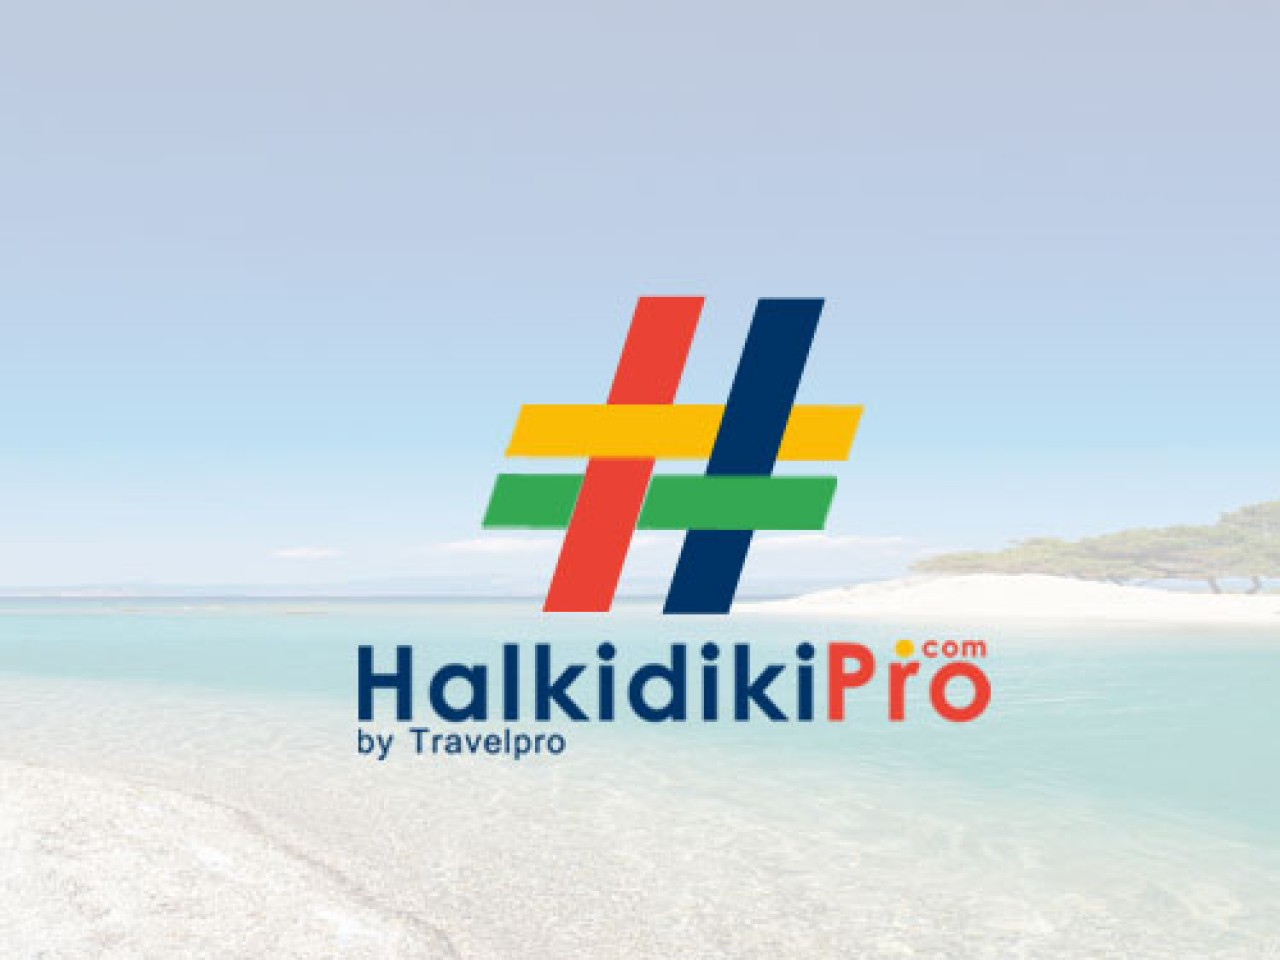 The Project: www.halkidikipro.com